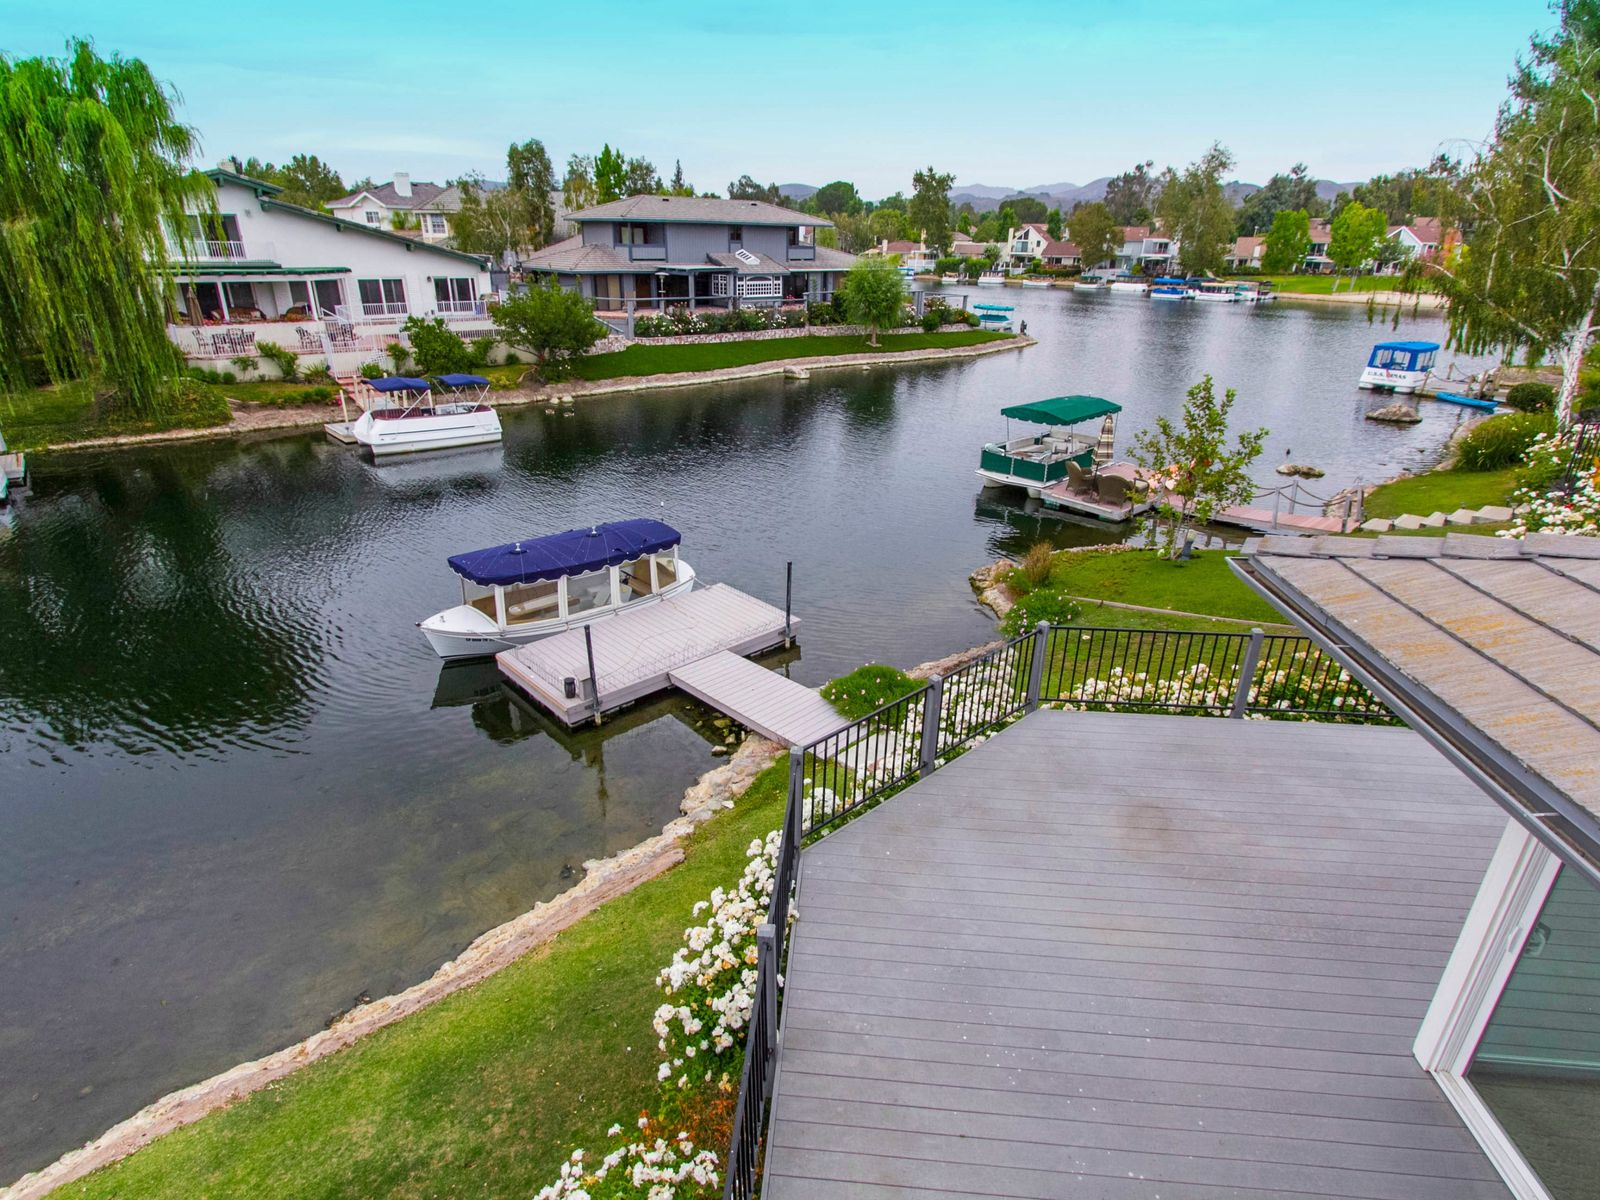 Westlake Island with Pool/Spa and Views, Westlake Village CA Single Family Home - Los Angeles Real Estate